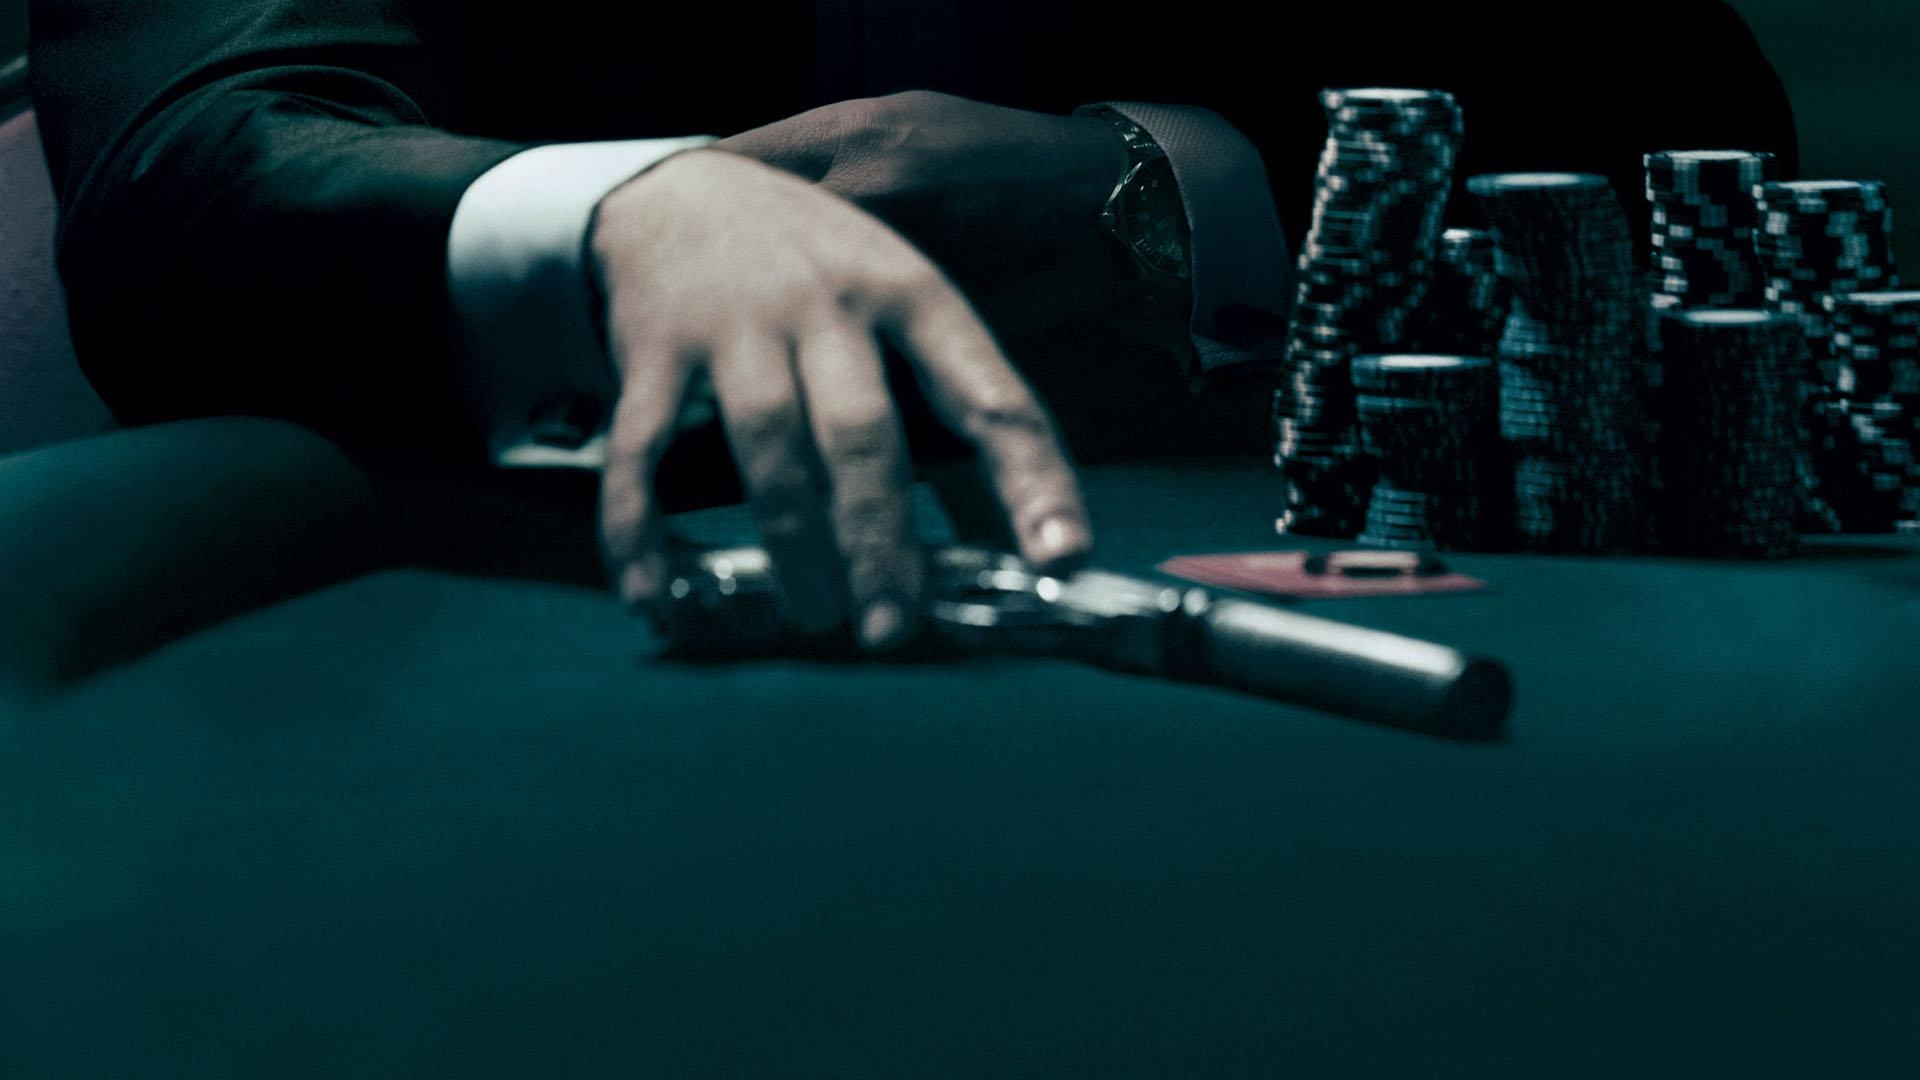 What are the benefits of playing live casinos in Singapore?